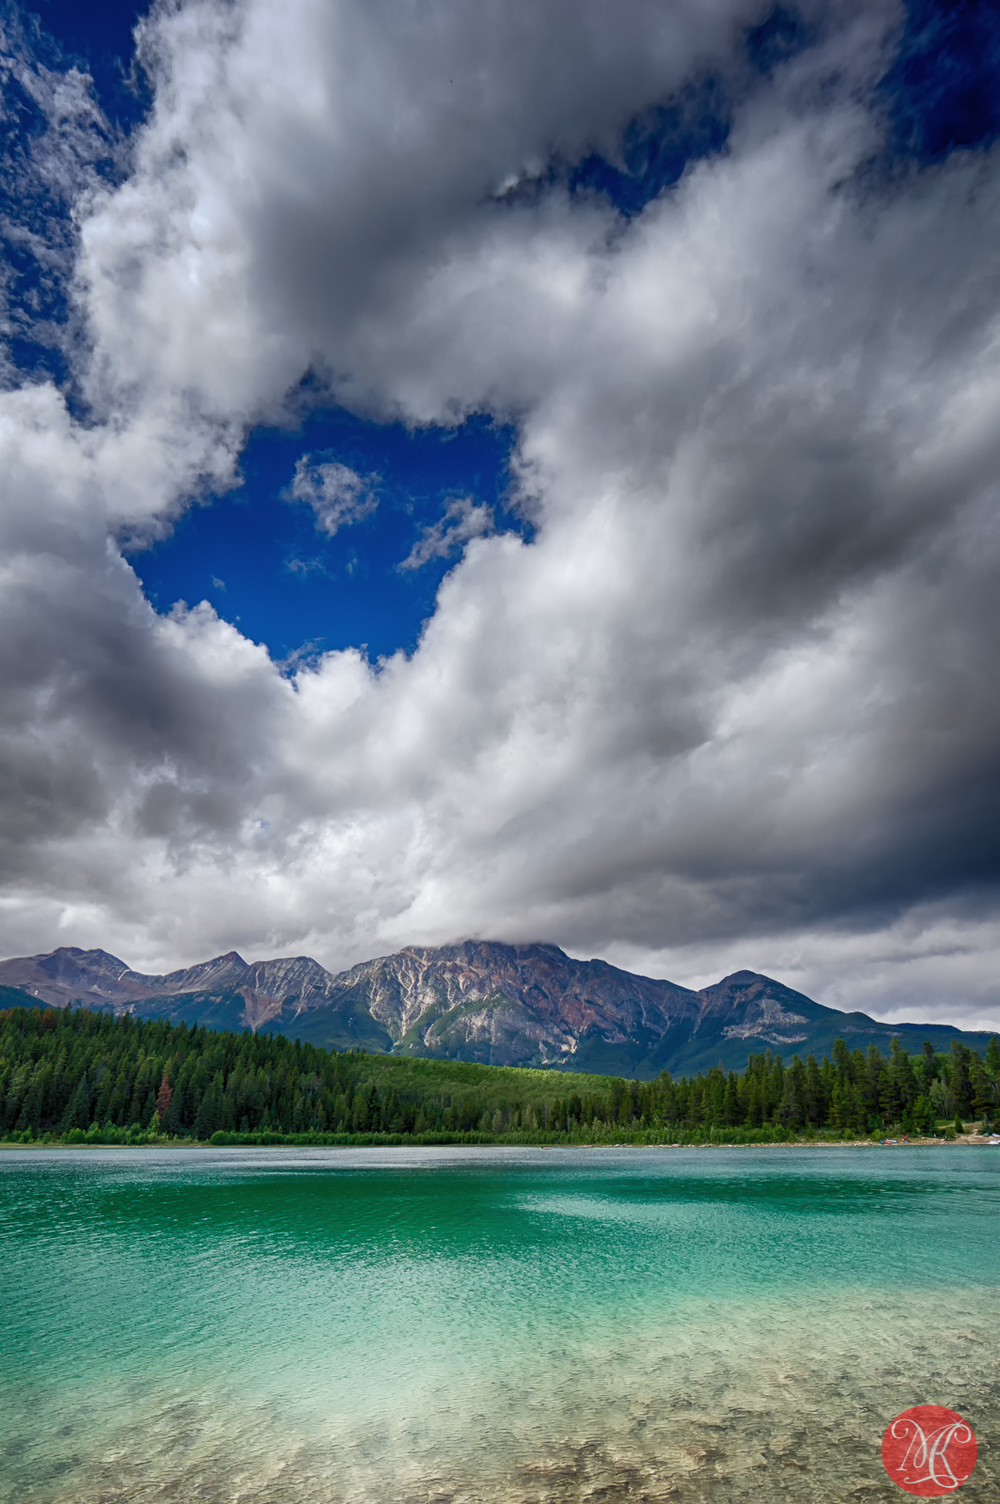 Pyramid Mountain, Patricia Lake, Jasper National Park, Alberta